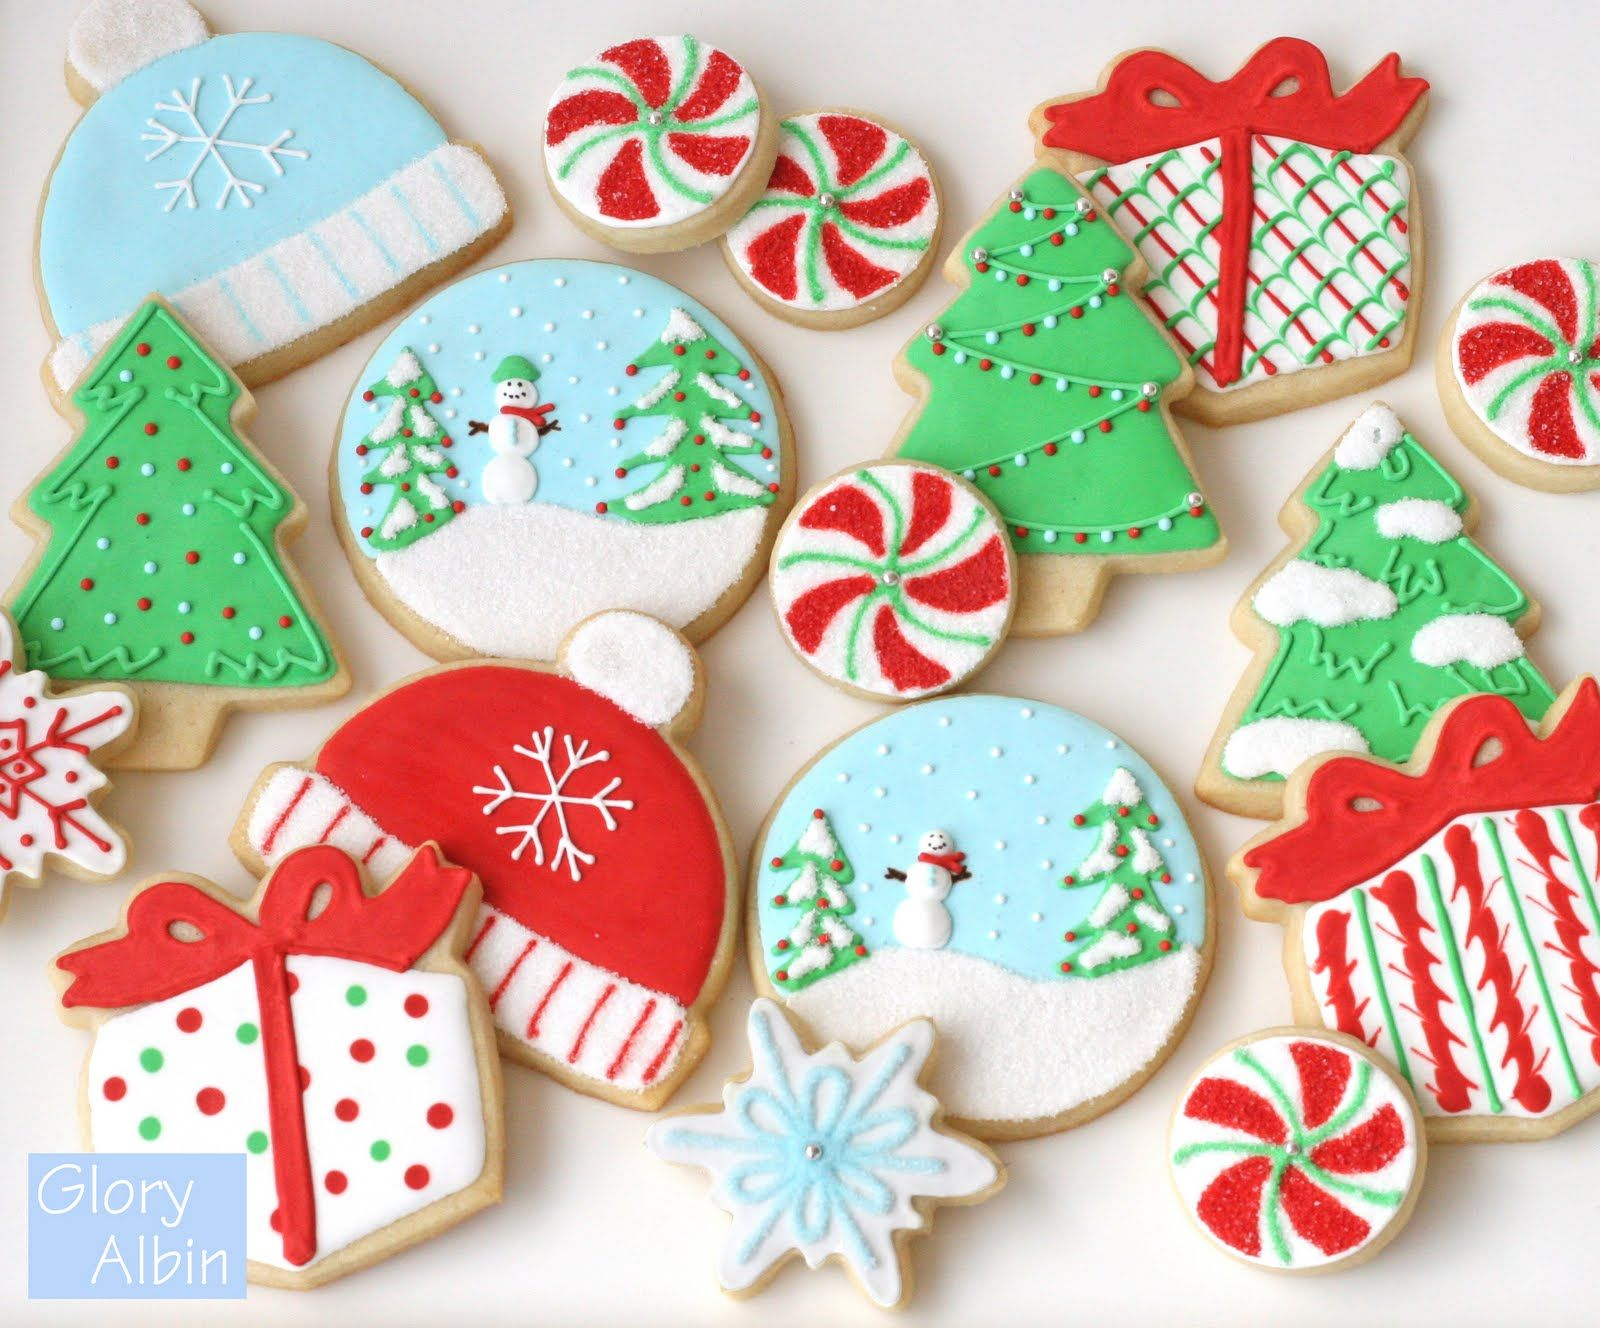 Decorating Sugar Cookies with Royal Icing | Royal icing, Cookie ...